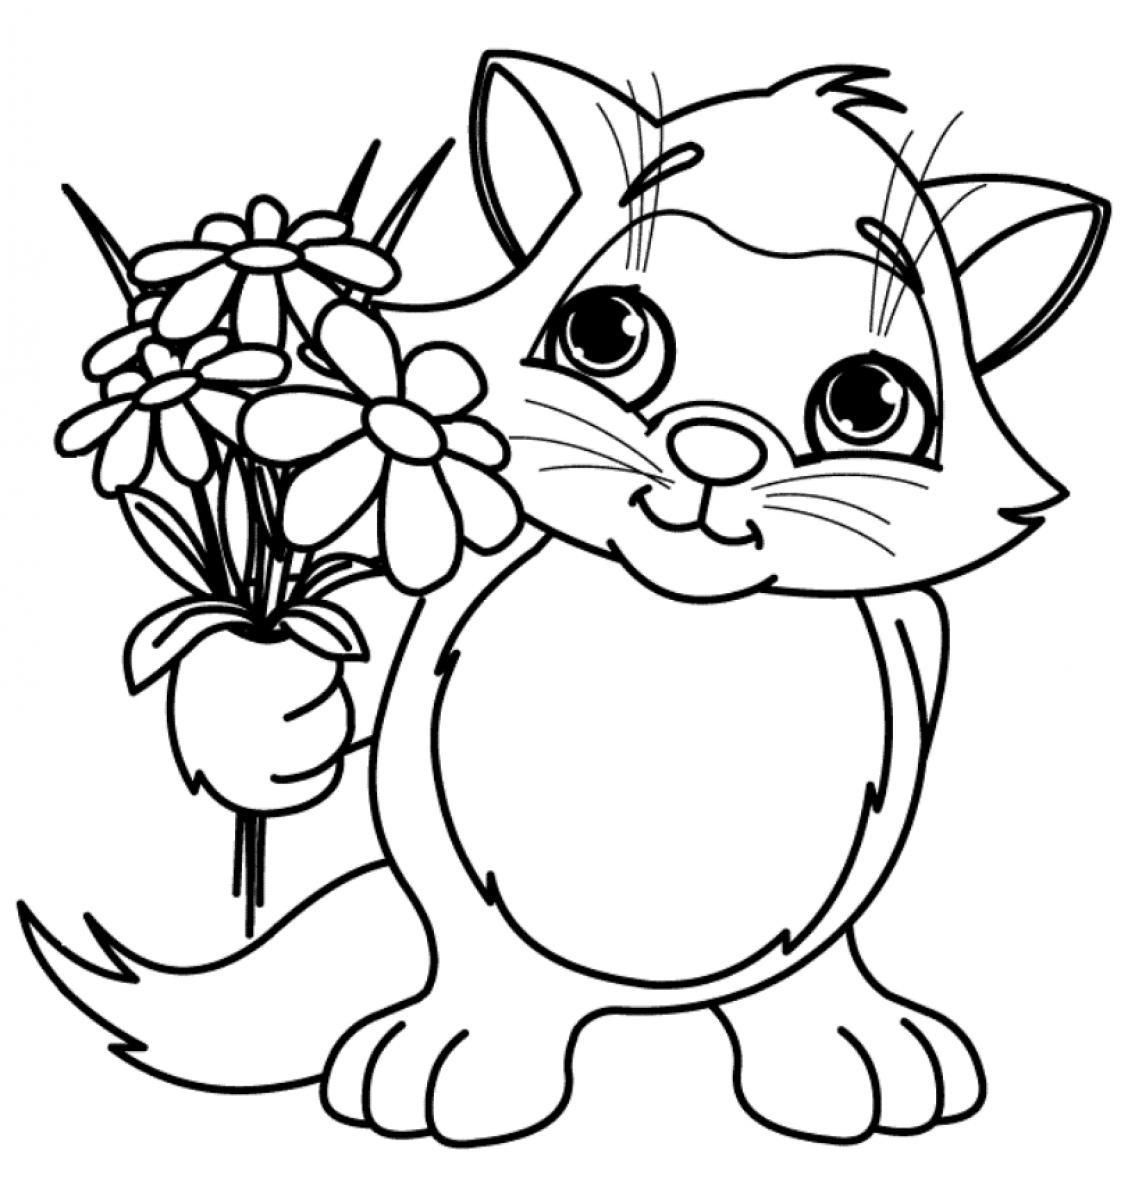 1135x1200 Incredible Spring Coloring Pages Printable Orango Picture